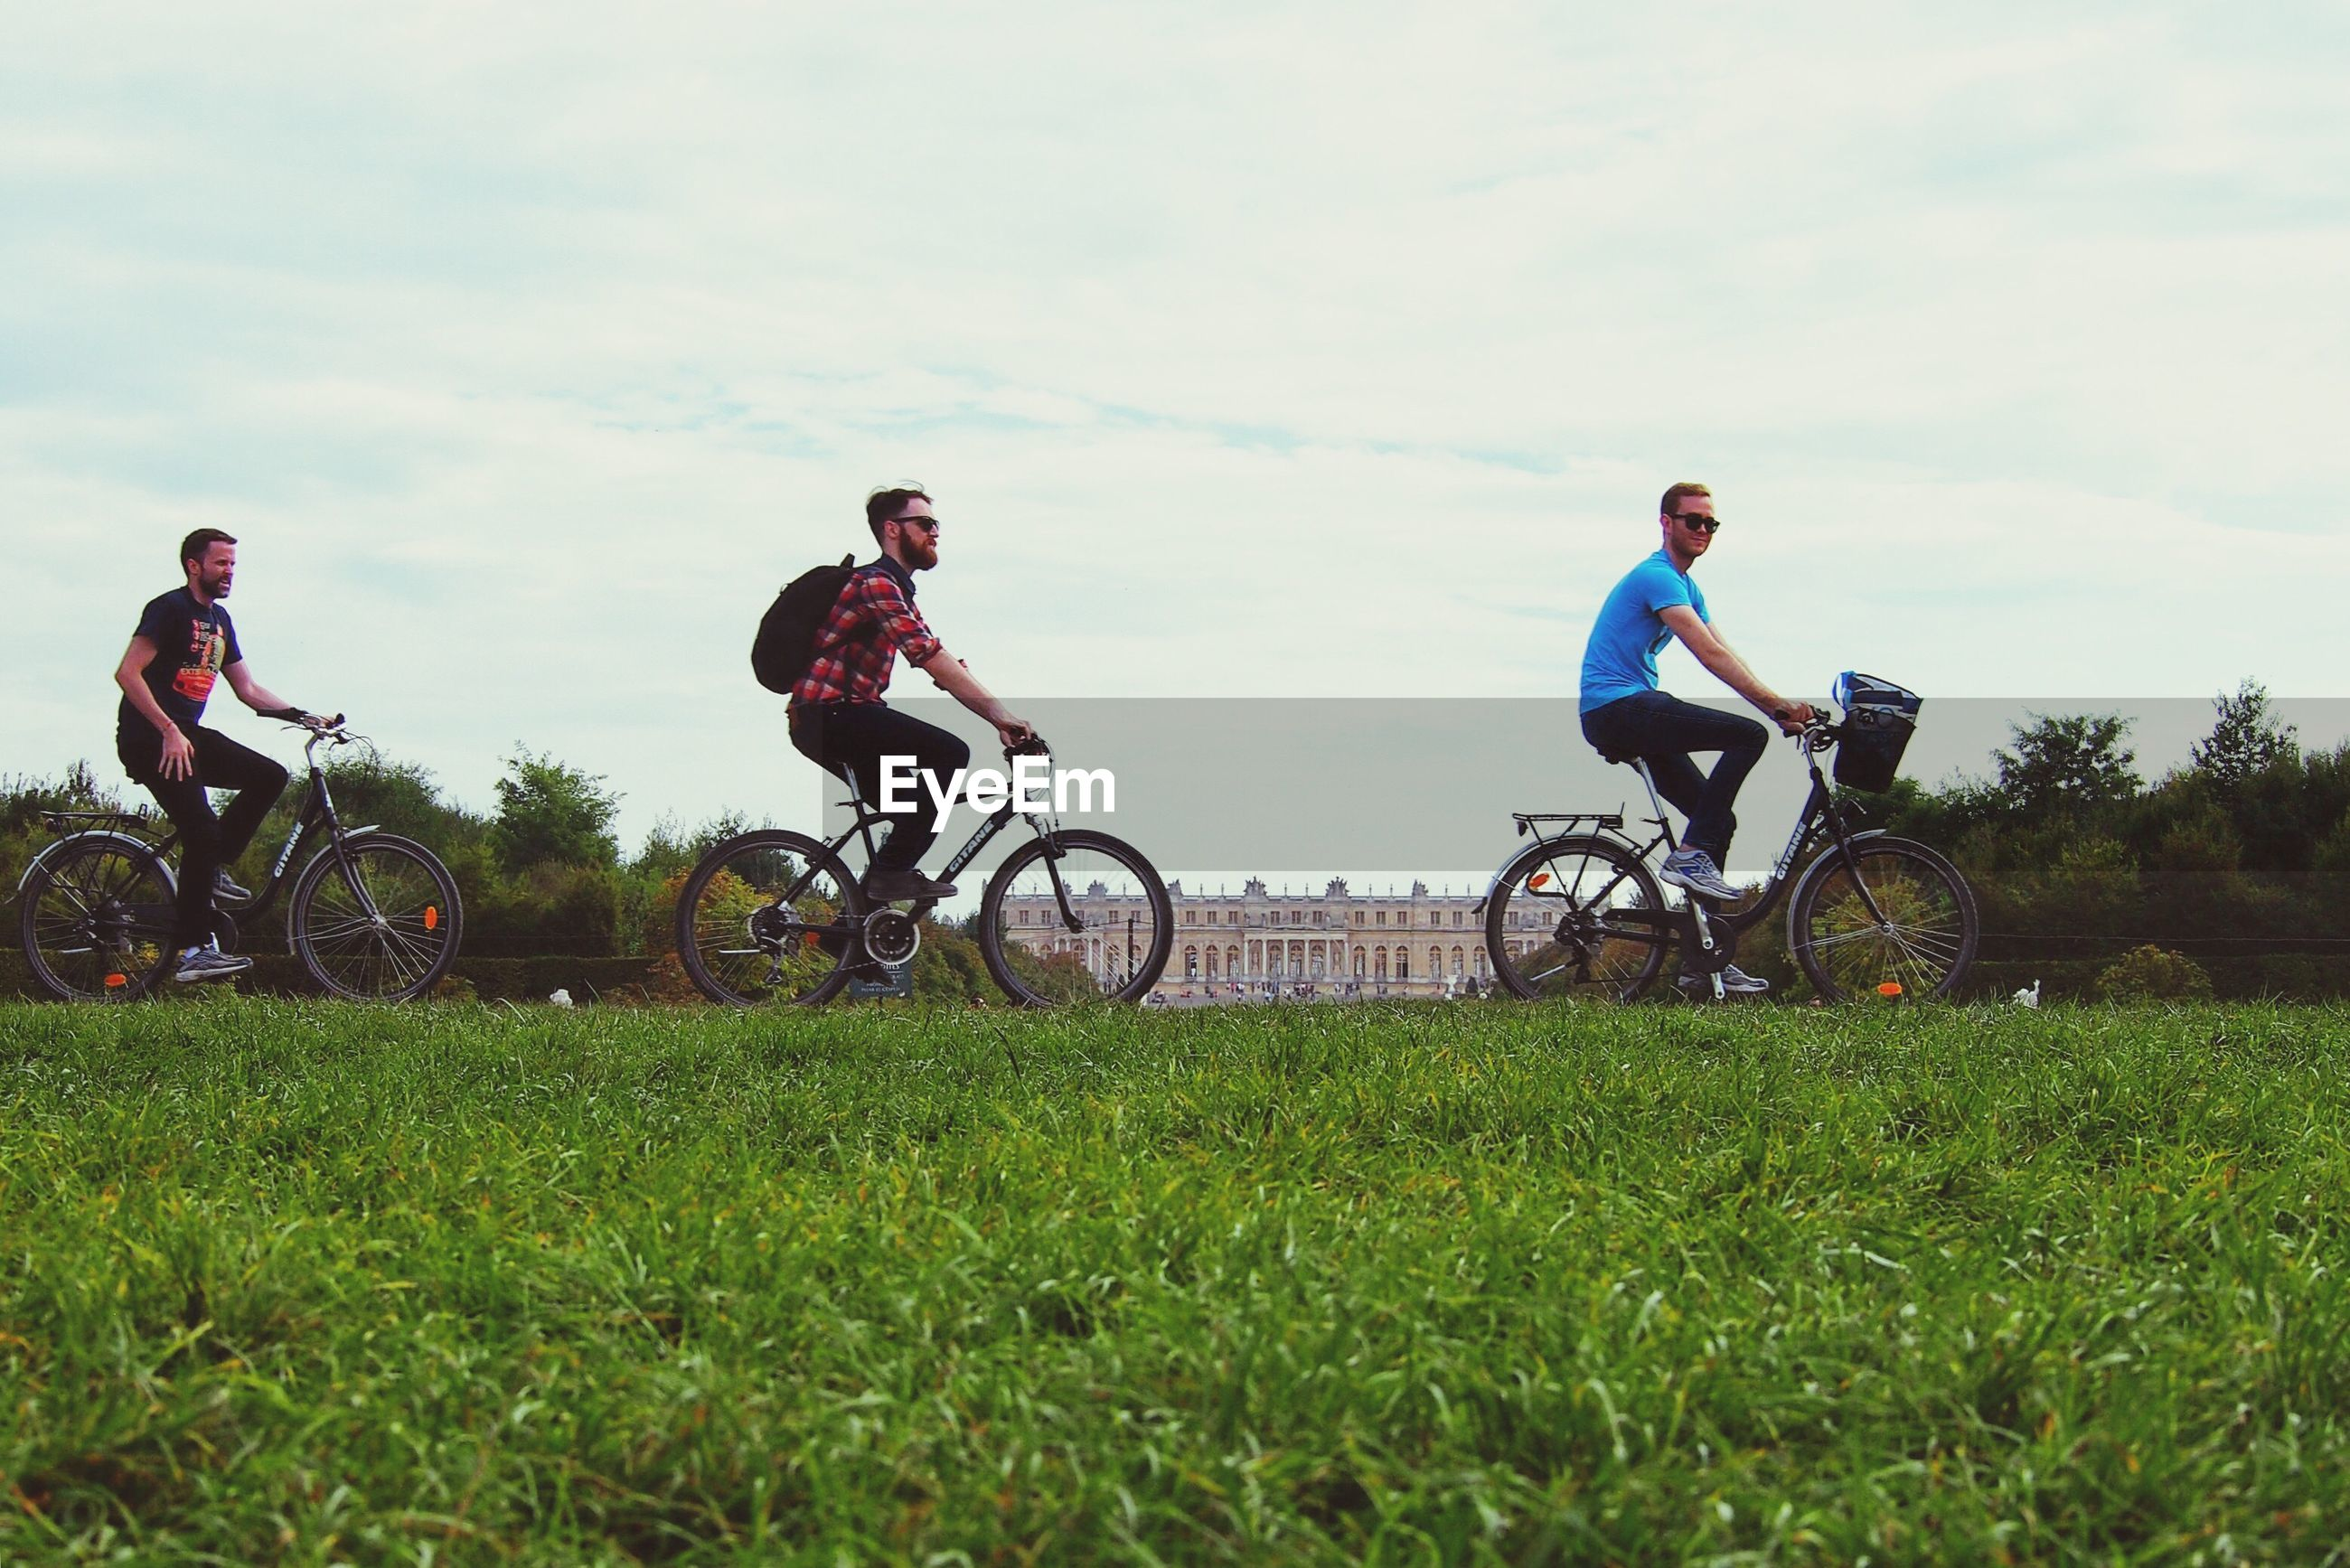 lifestyles, bicycle, leisure activity, transportation, land vehicle, mode of transport, riding, men, full length, grass, casual clothing, sky, togetherness, motorcycle, cycling, field, travel